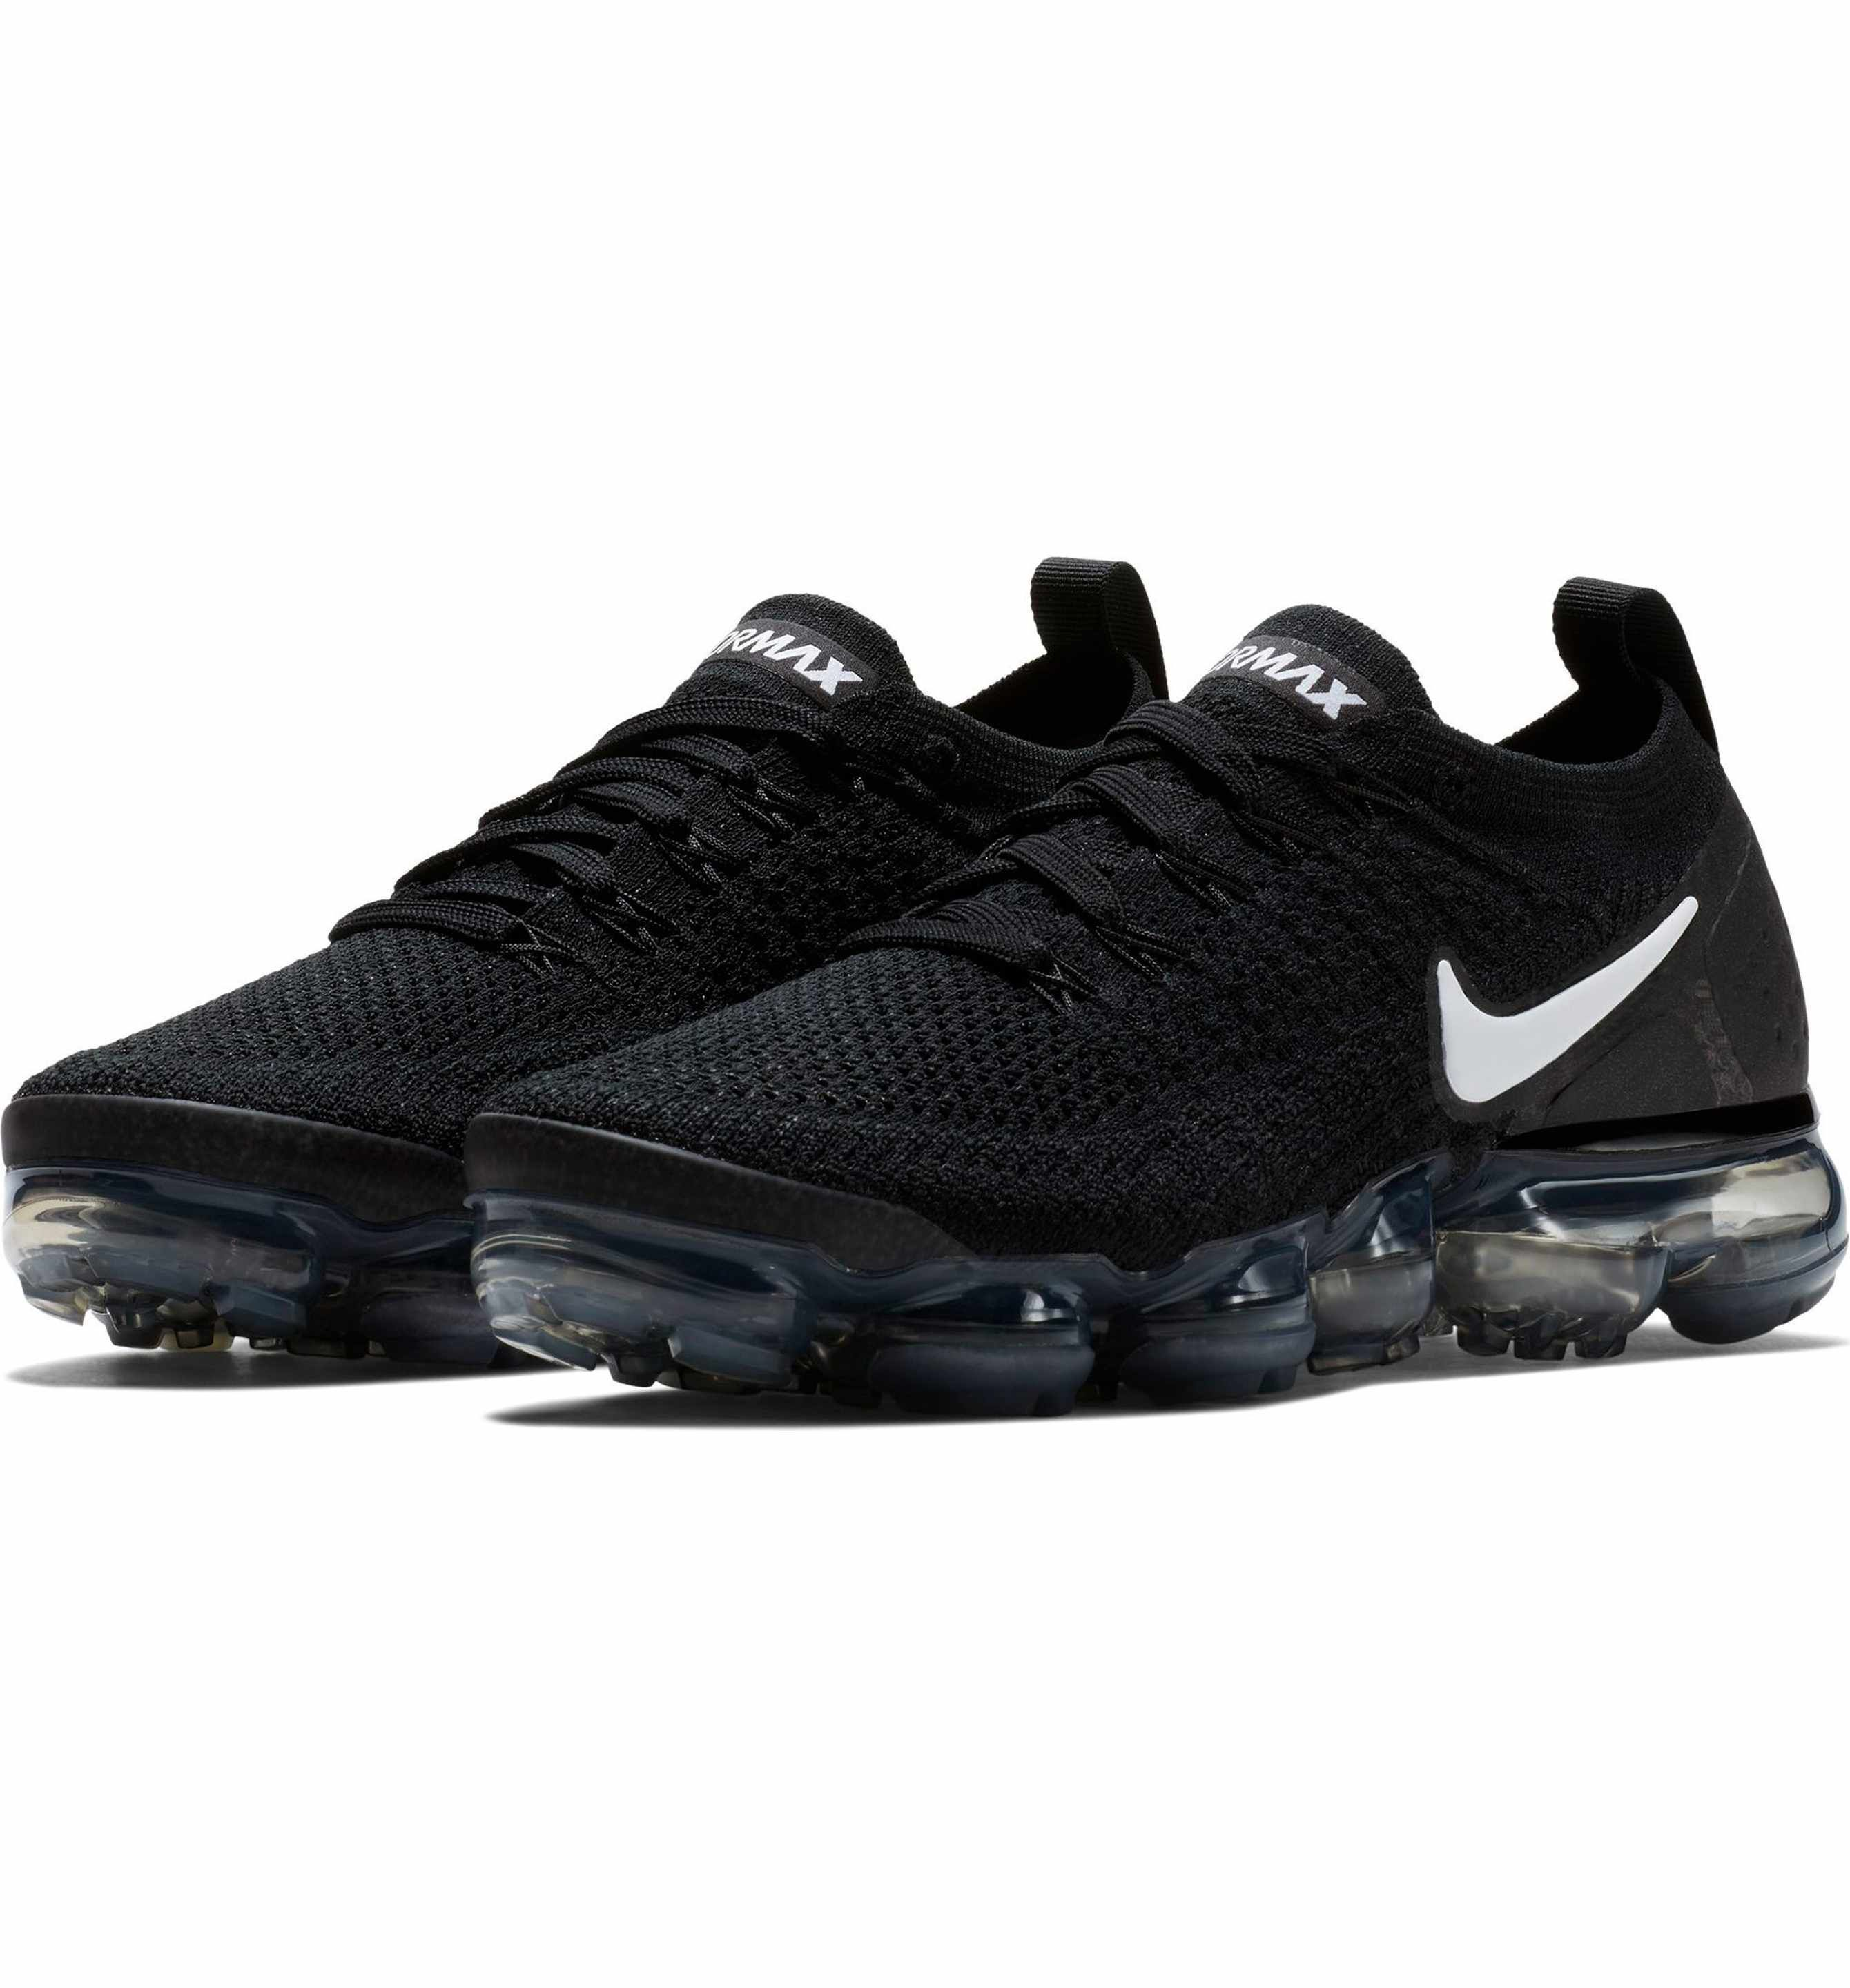 90112ca97591a Main Image - Nike Air VaporMax Flyknit 2 Running Shoe (Women)